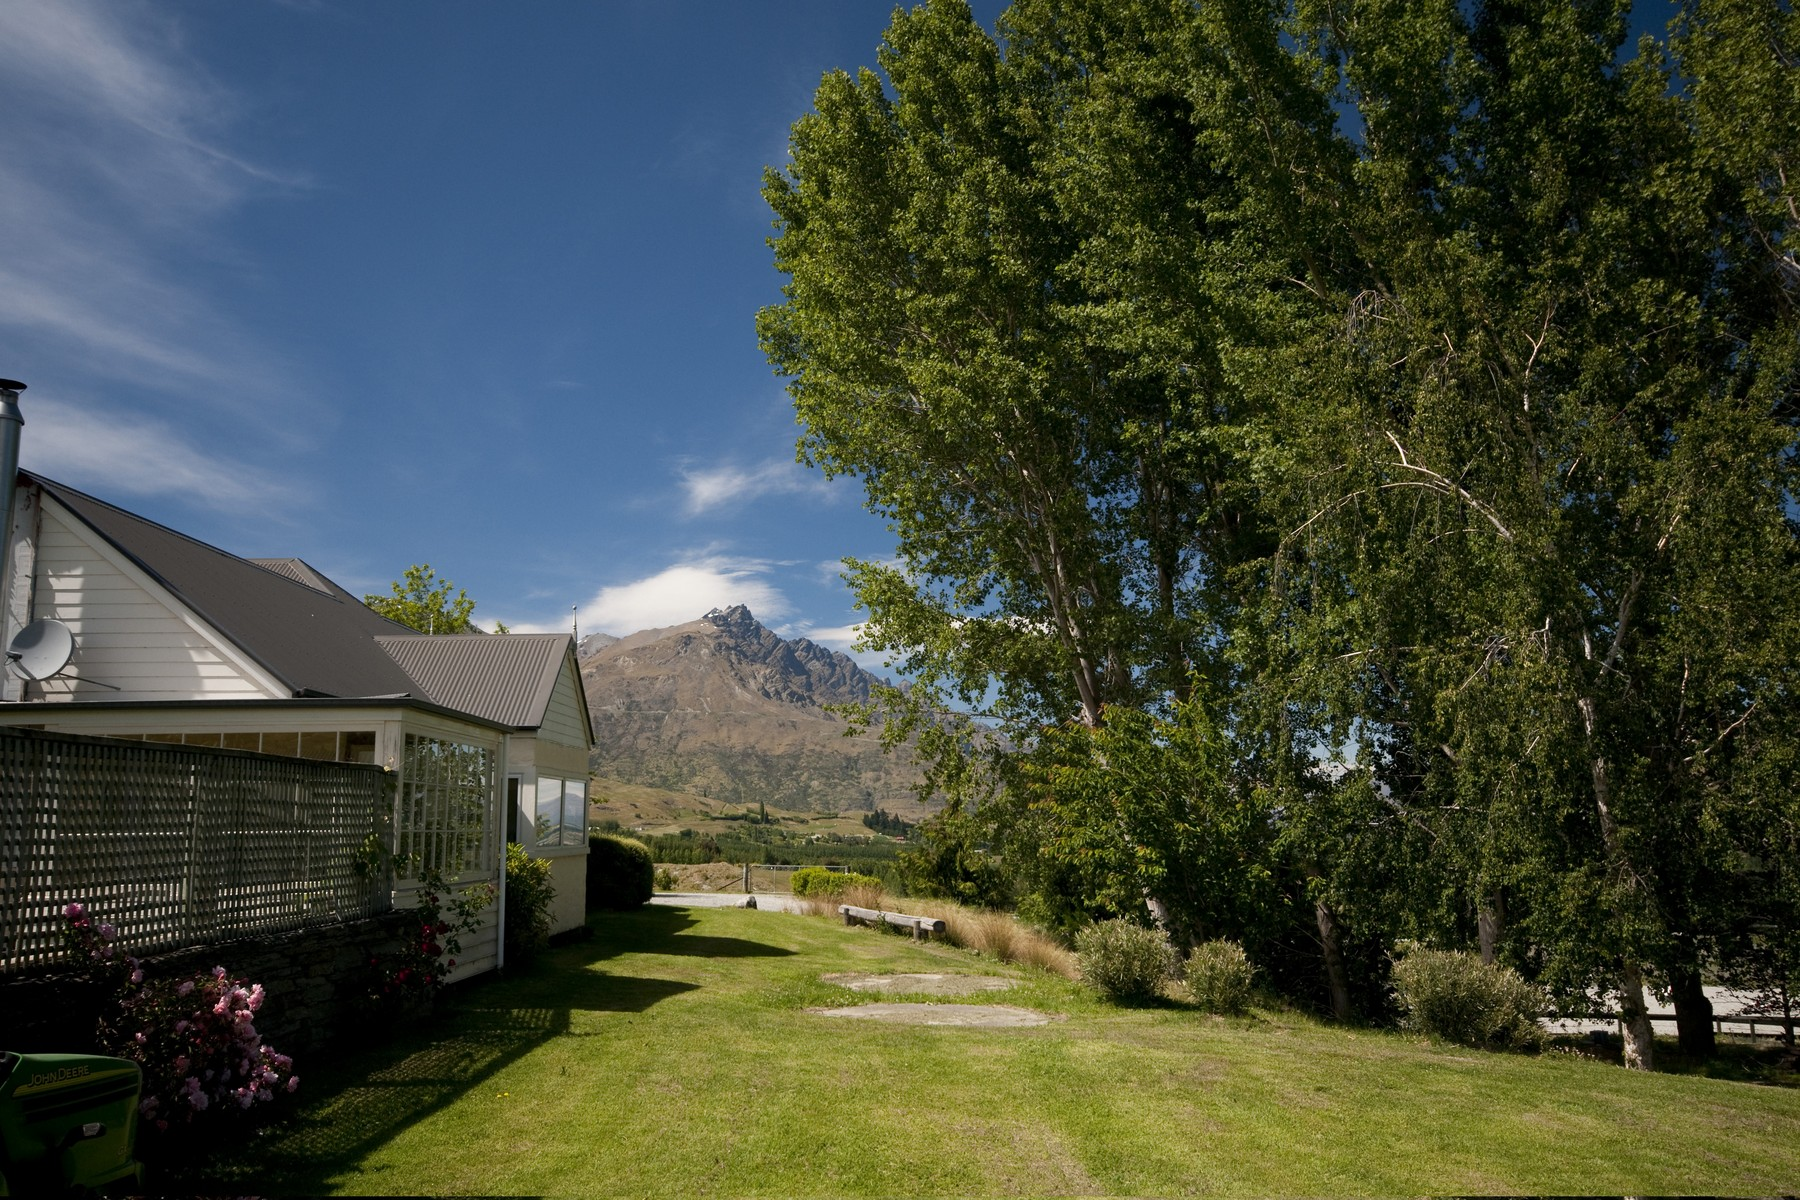 Maison unifamiliale pour l Vente à Speargrass Farm, 125 Hunter Road 125 Hunter Road Speargrass Flat Queenstown, Southern Lakes, 9371 Nouvelle-Zélande